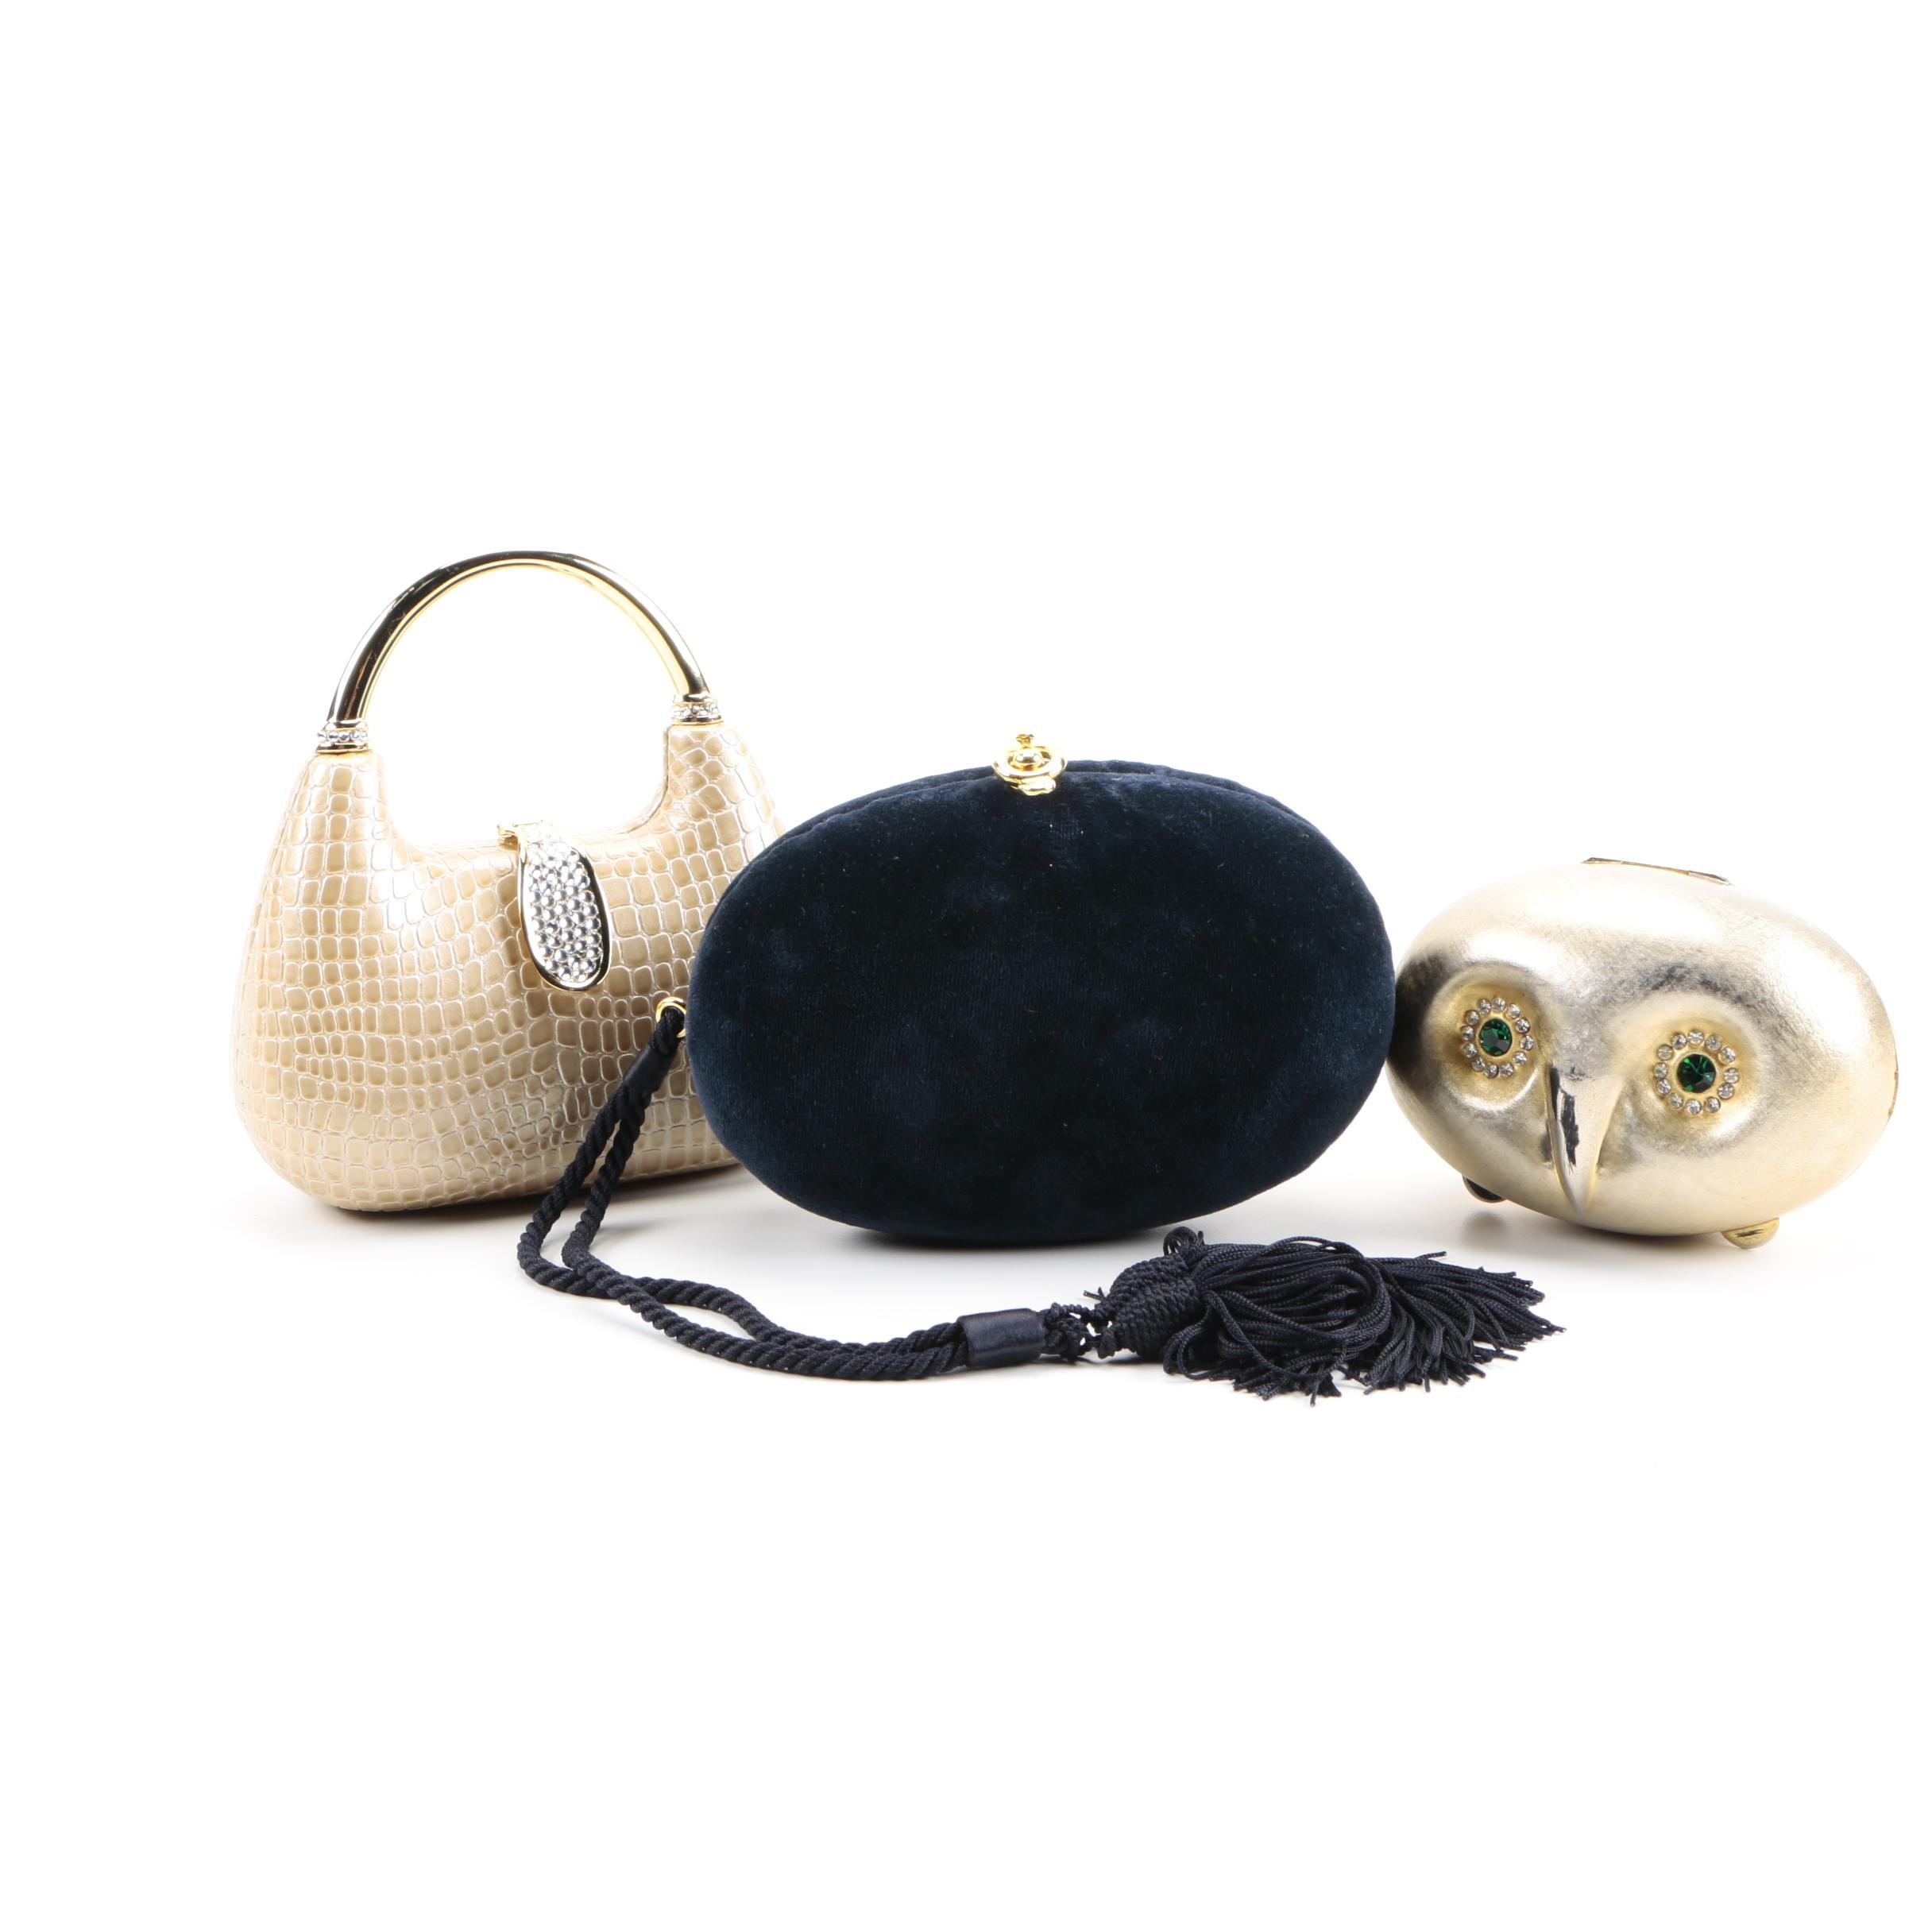 Hardshell Evening Bags Including Bergdorf Goodman